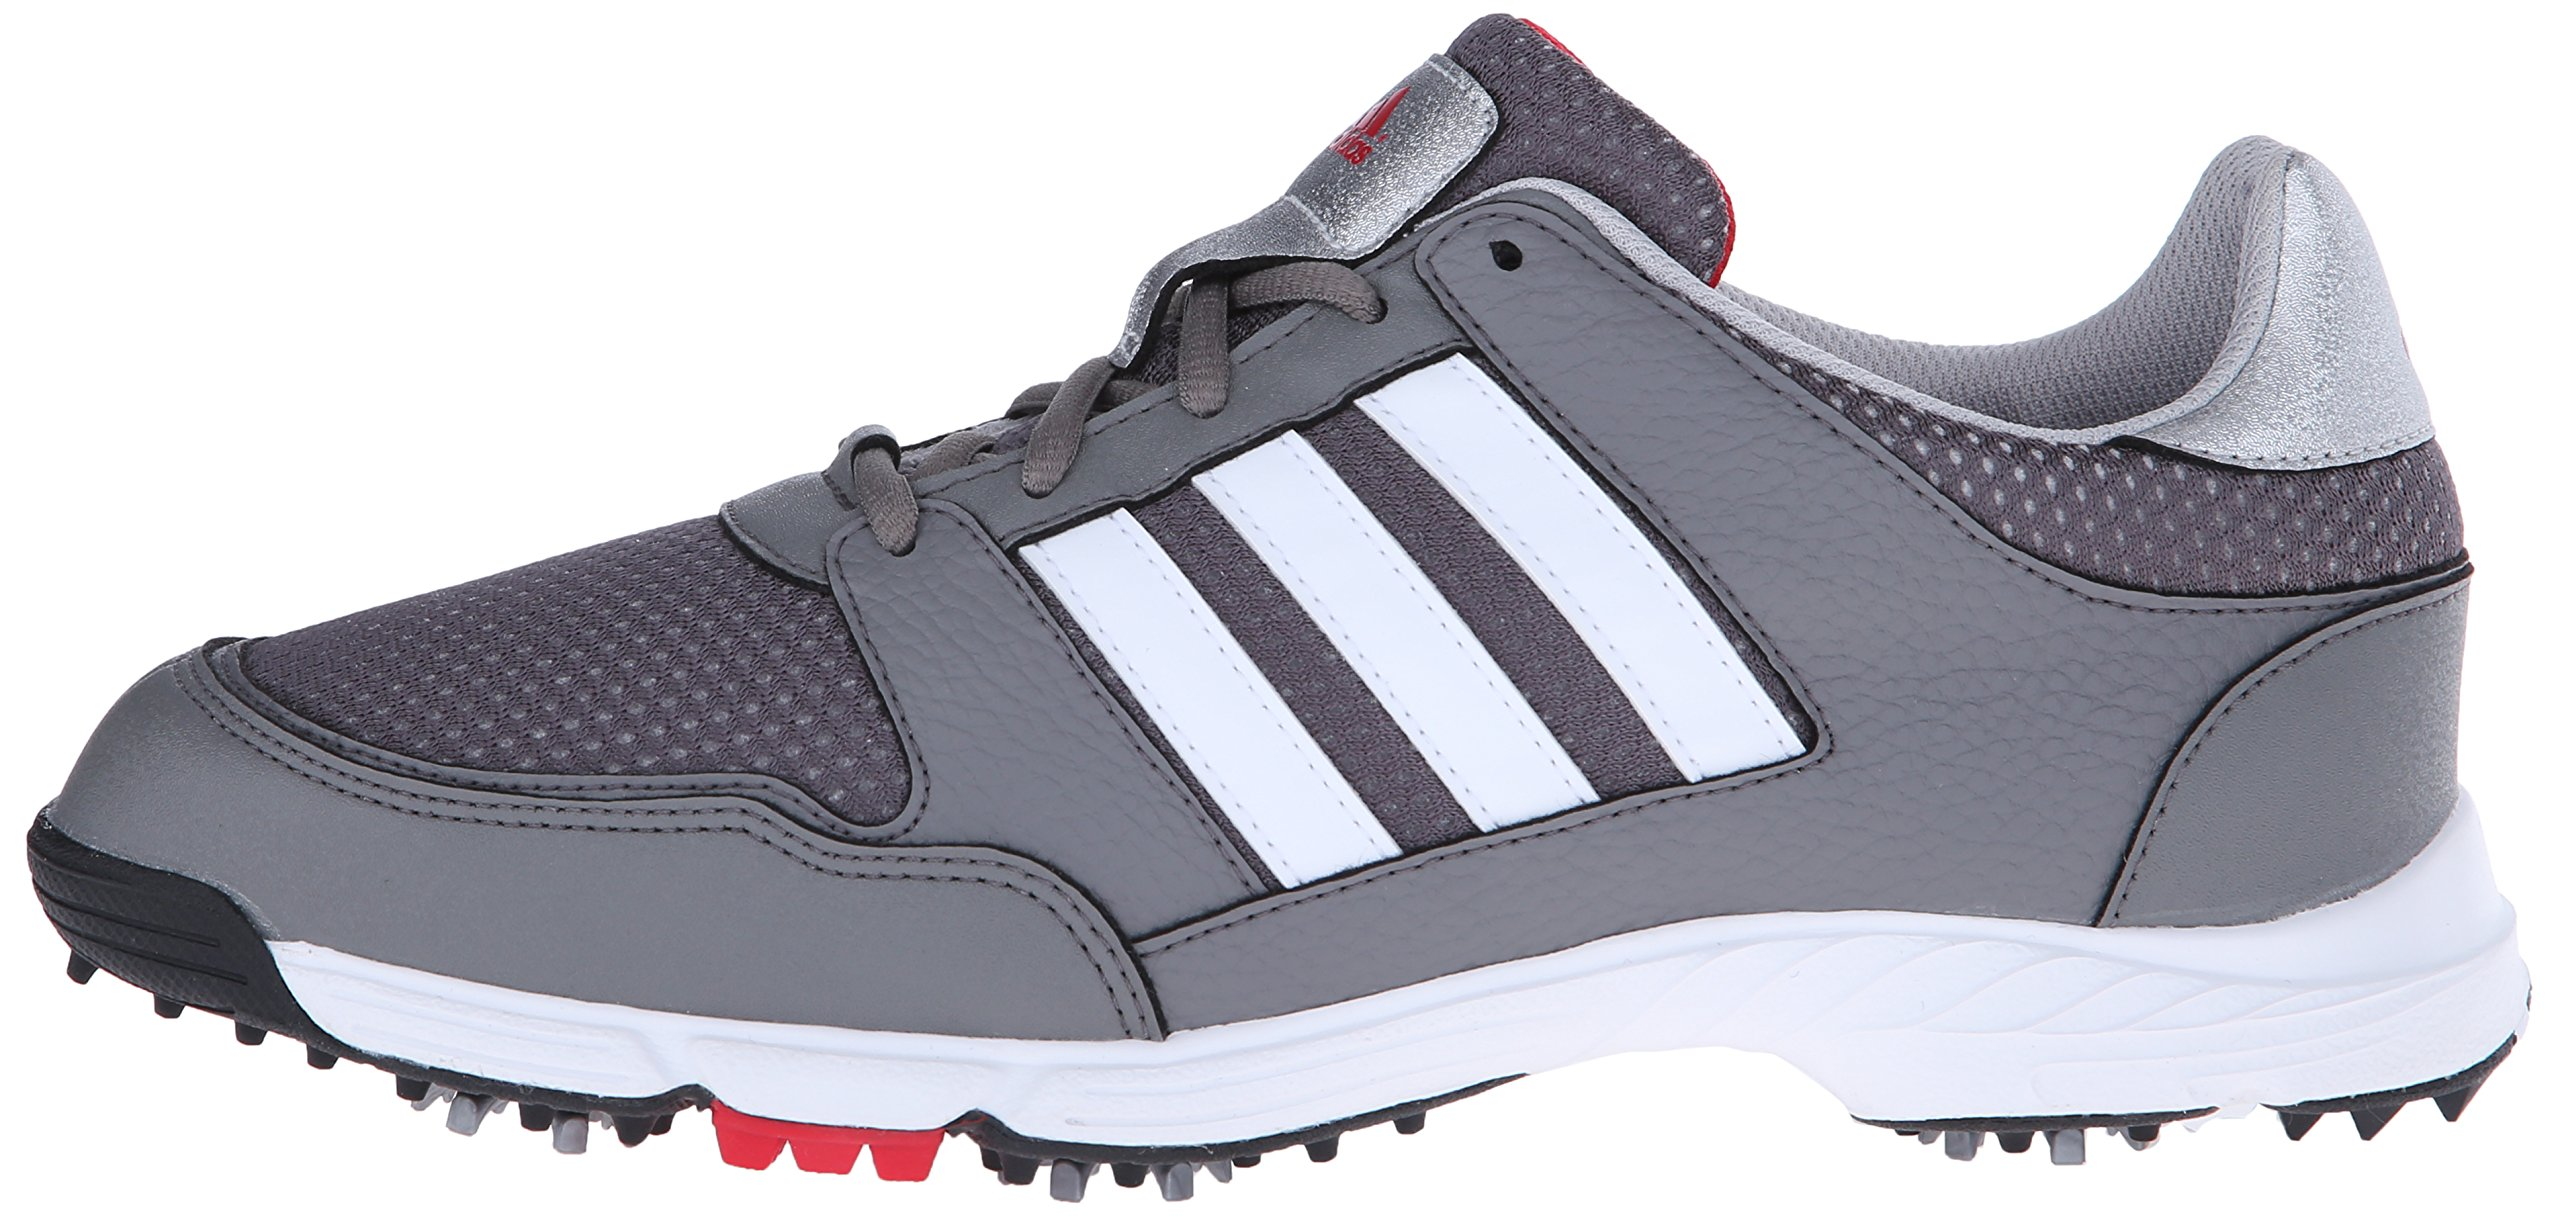 Men's Tech Response 4.0WD Golf Cleated